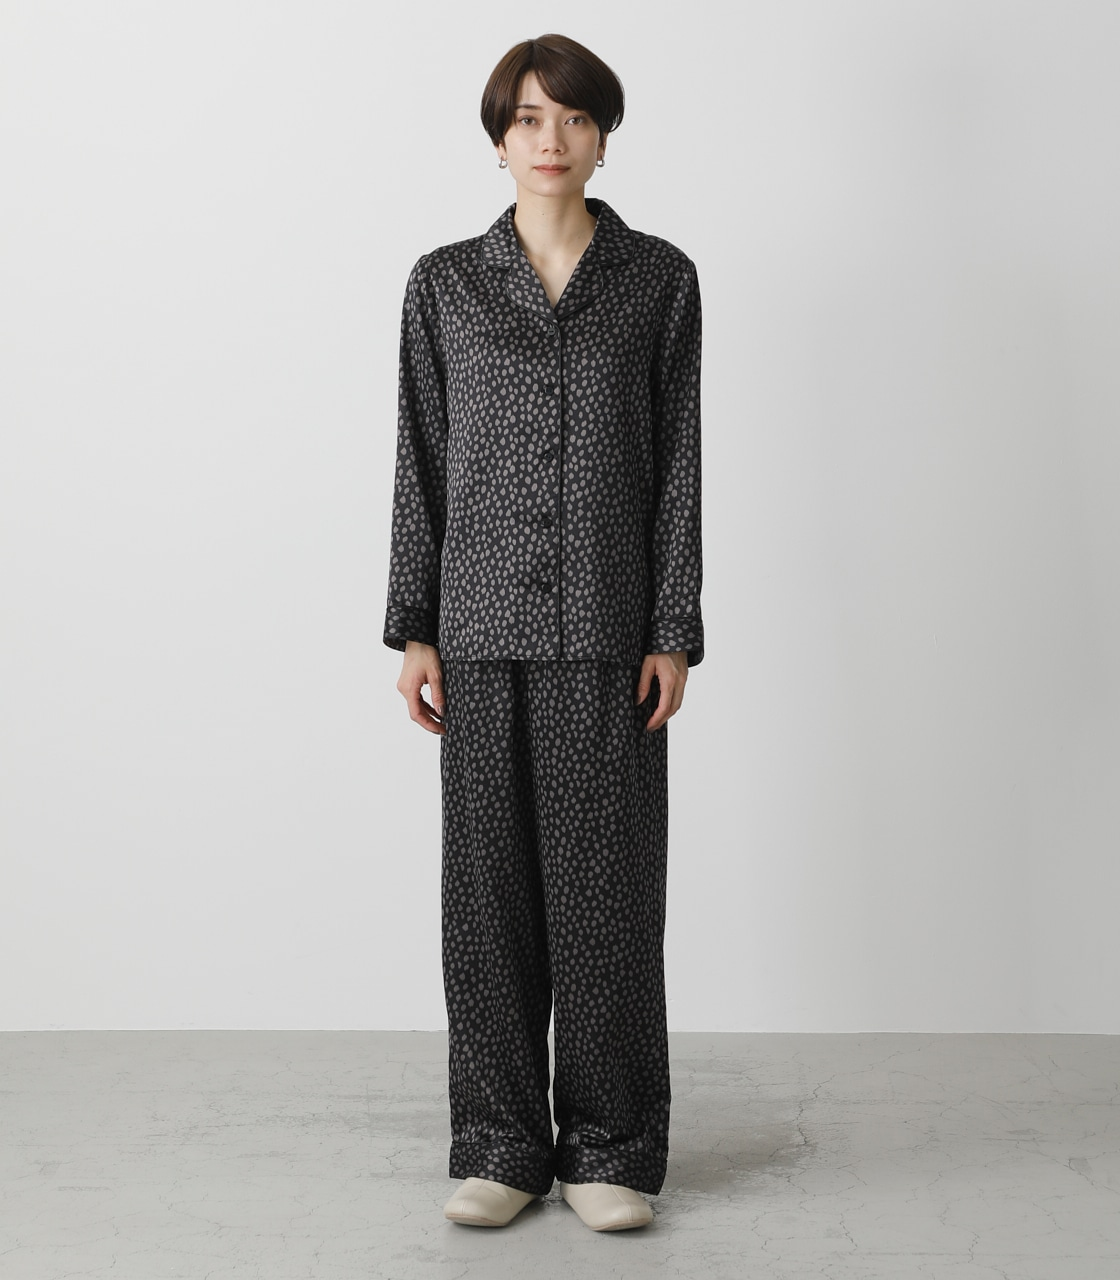 T/H SATIN L/S PAJAMAS/T/Hサテンロングスリーブパジャマ 詳細画像 柄BLK 5